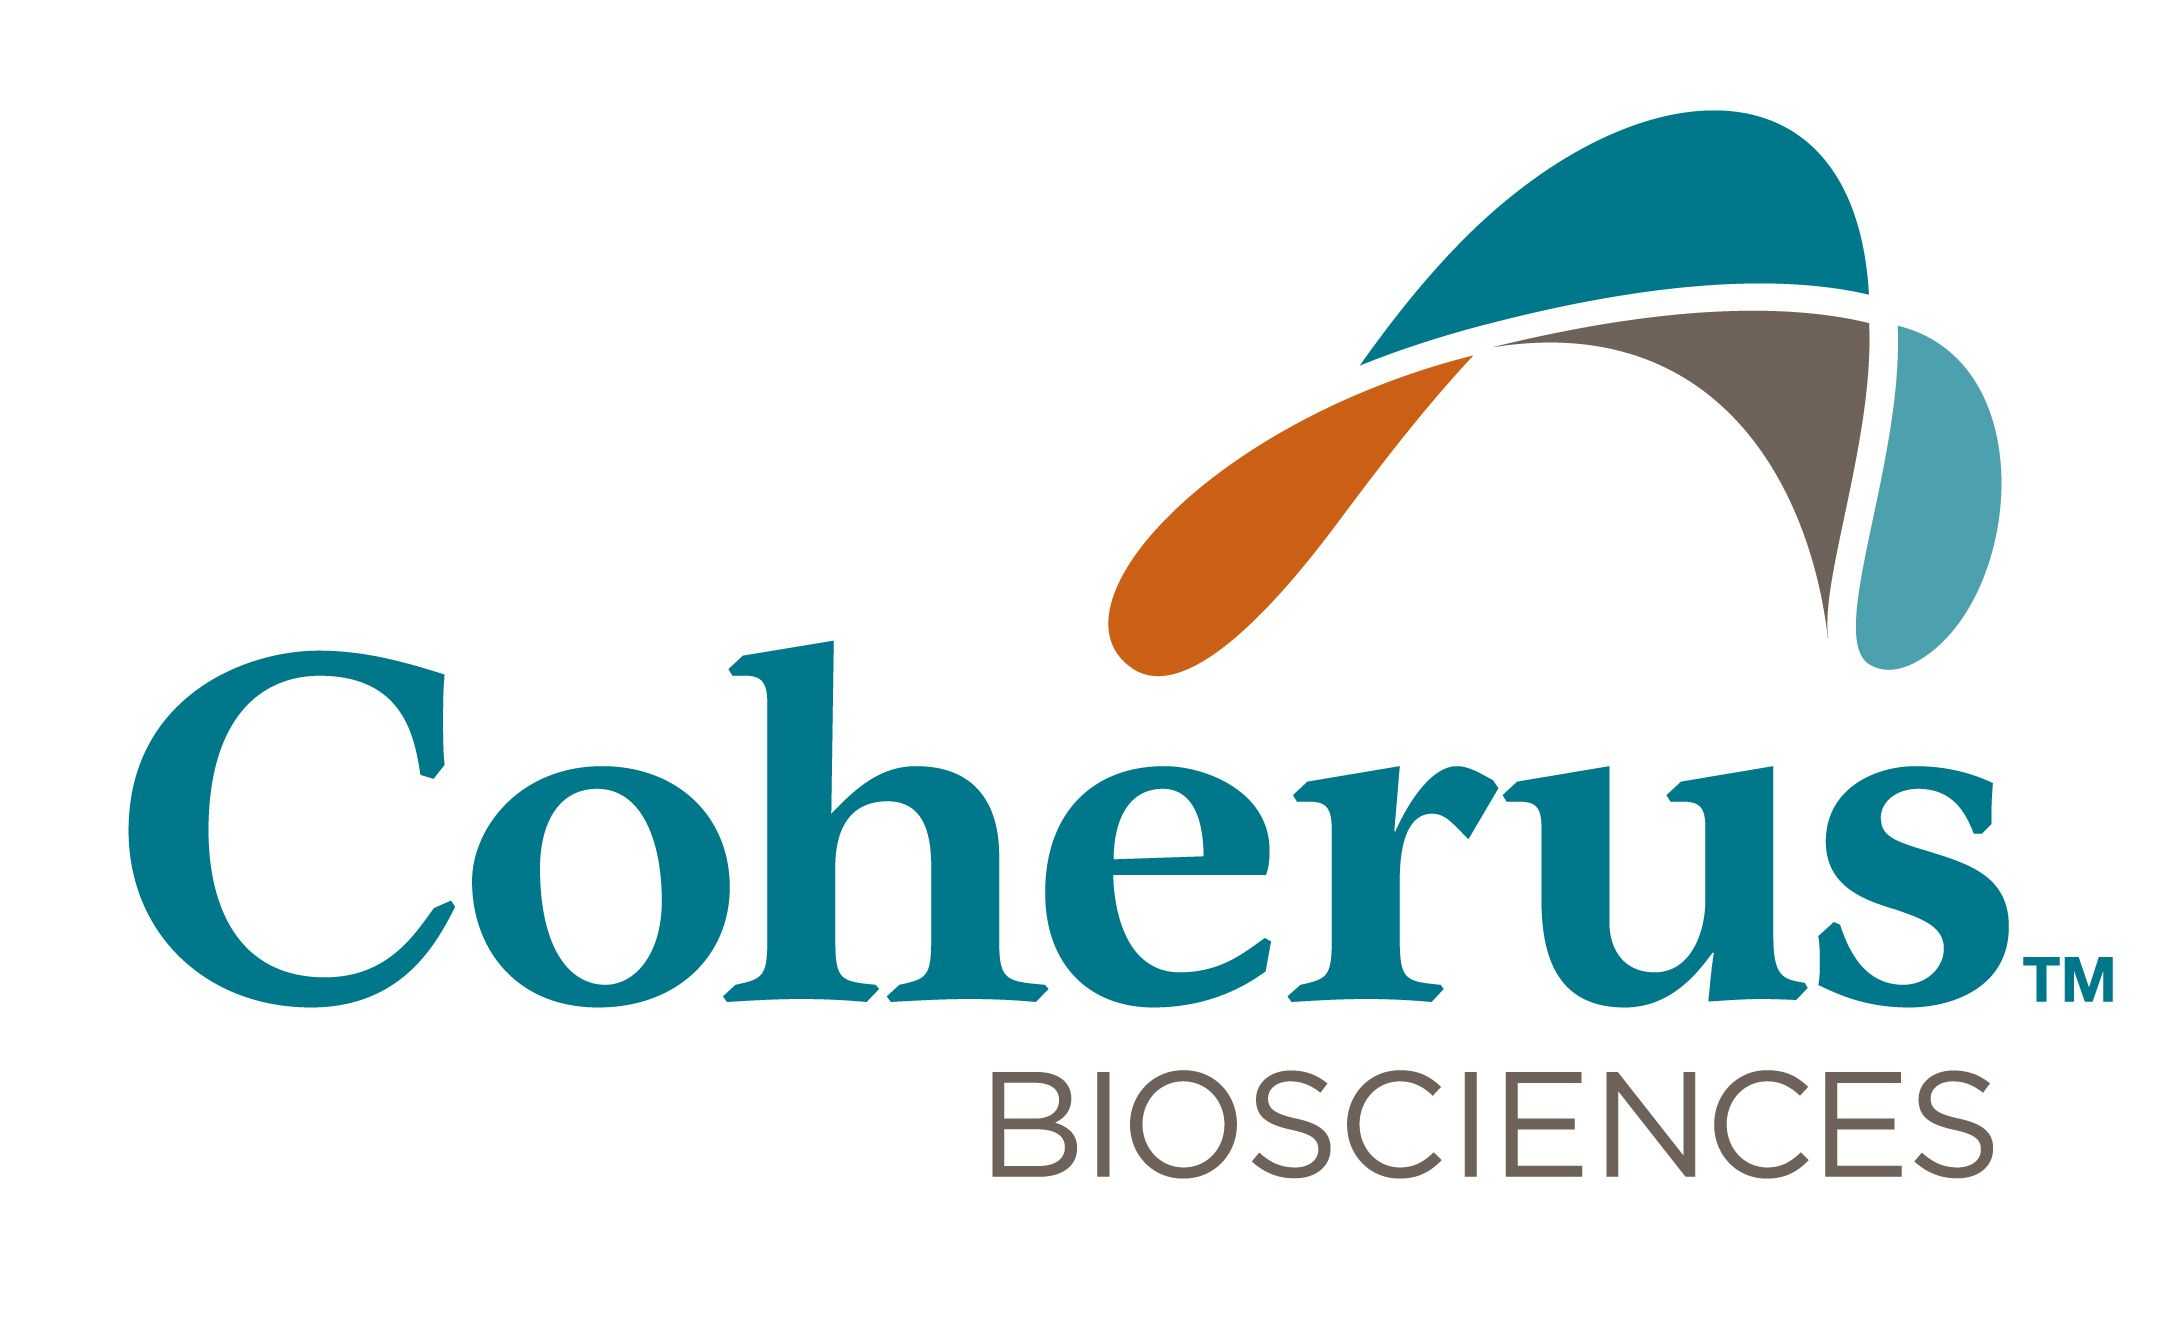 Coherus BioSciences, Inc. logo